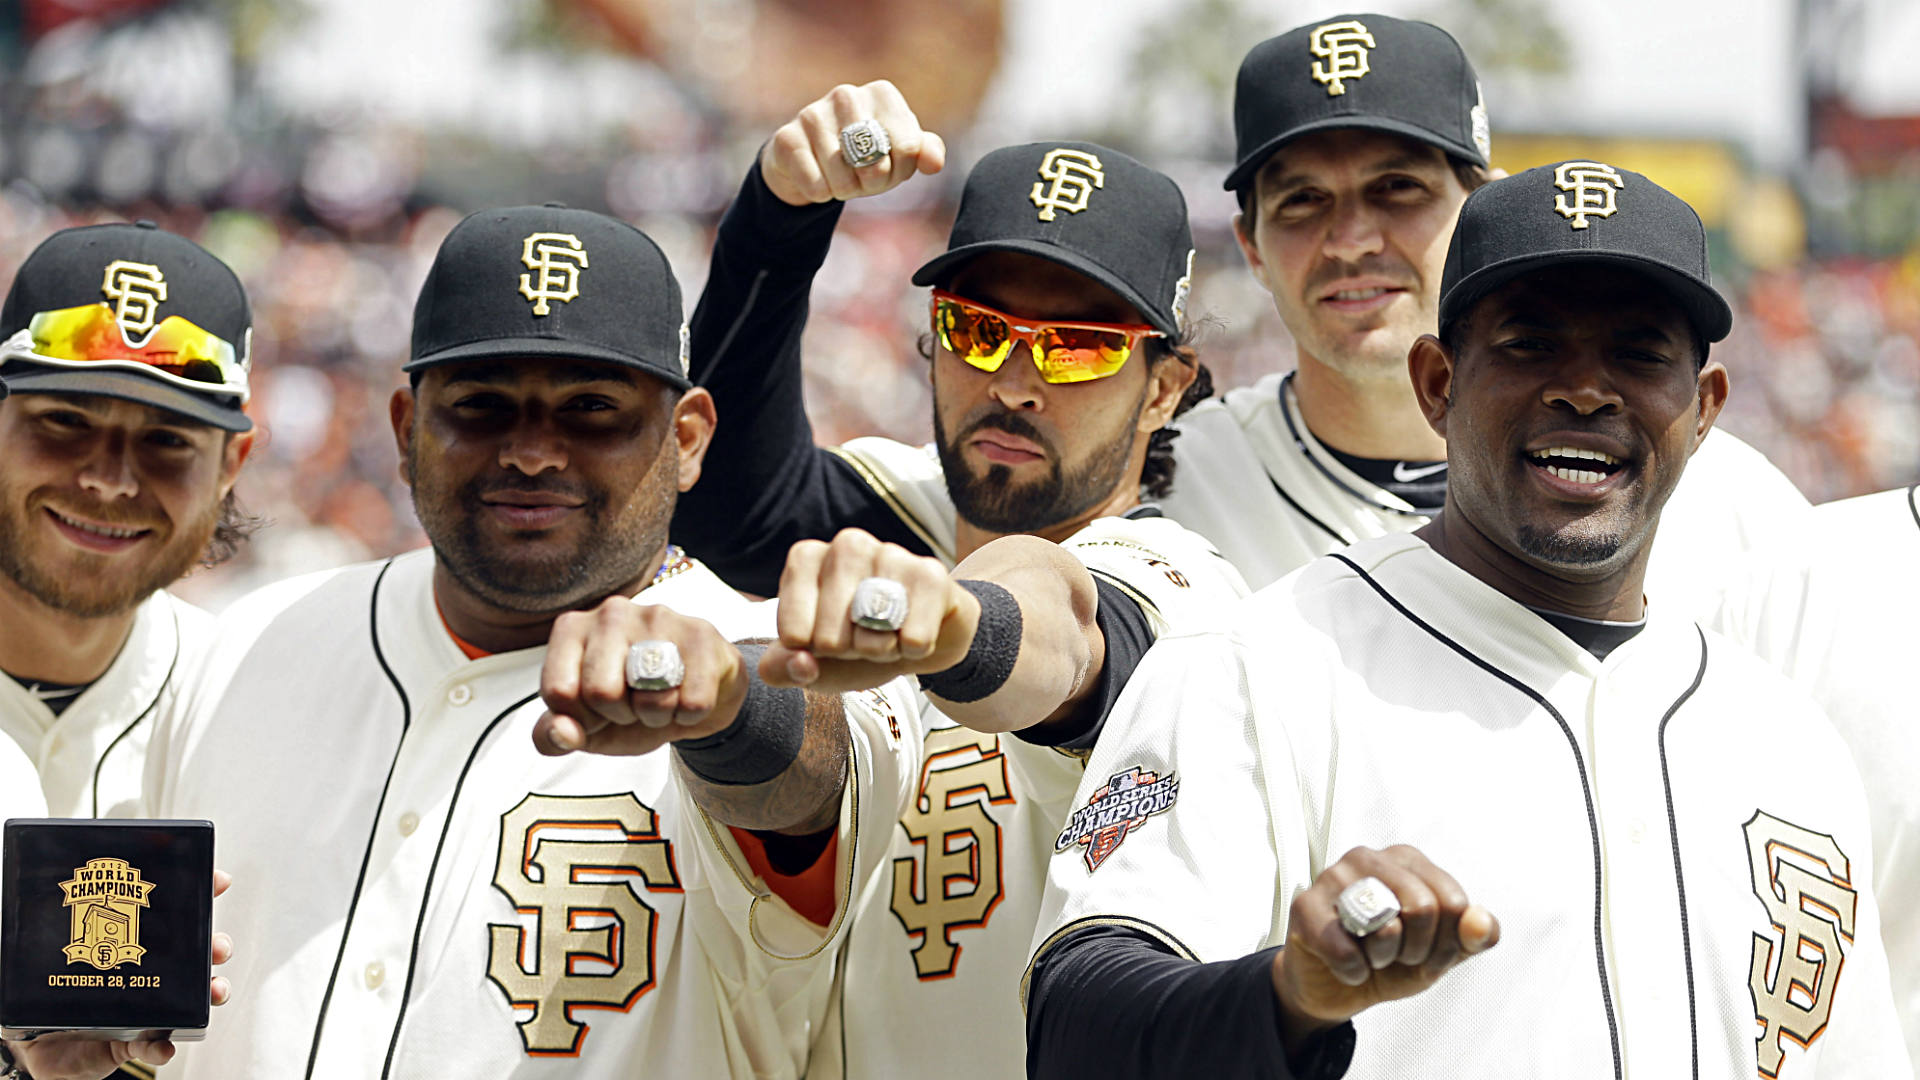 Giants 2012 World Series.jpg